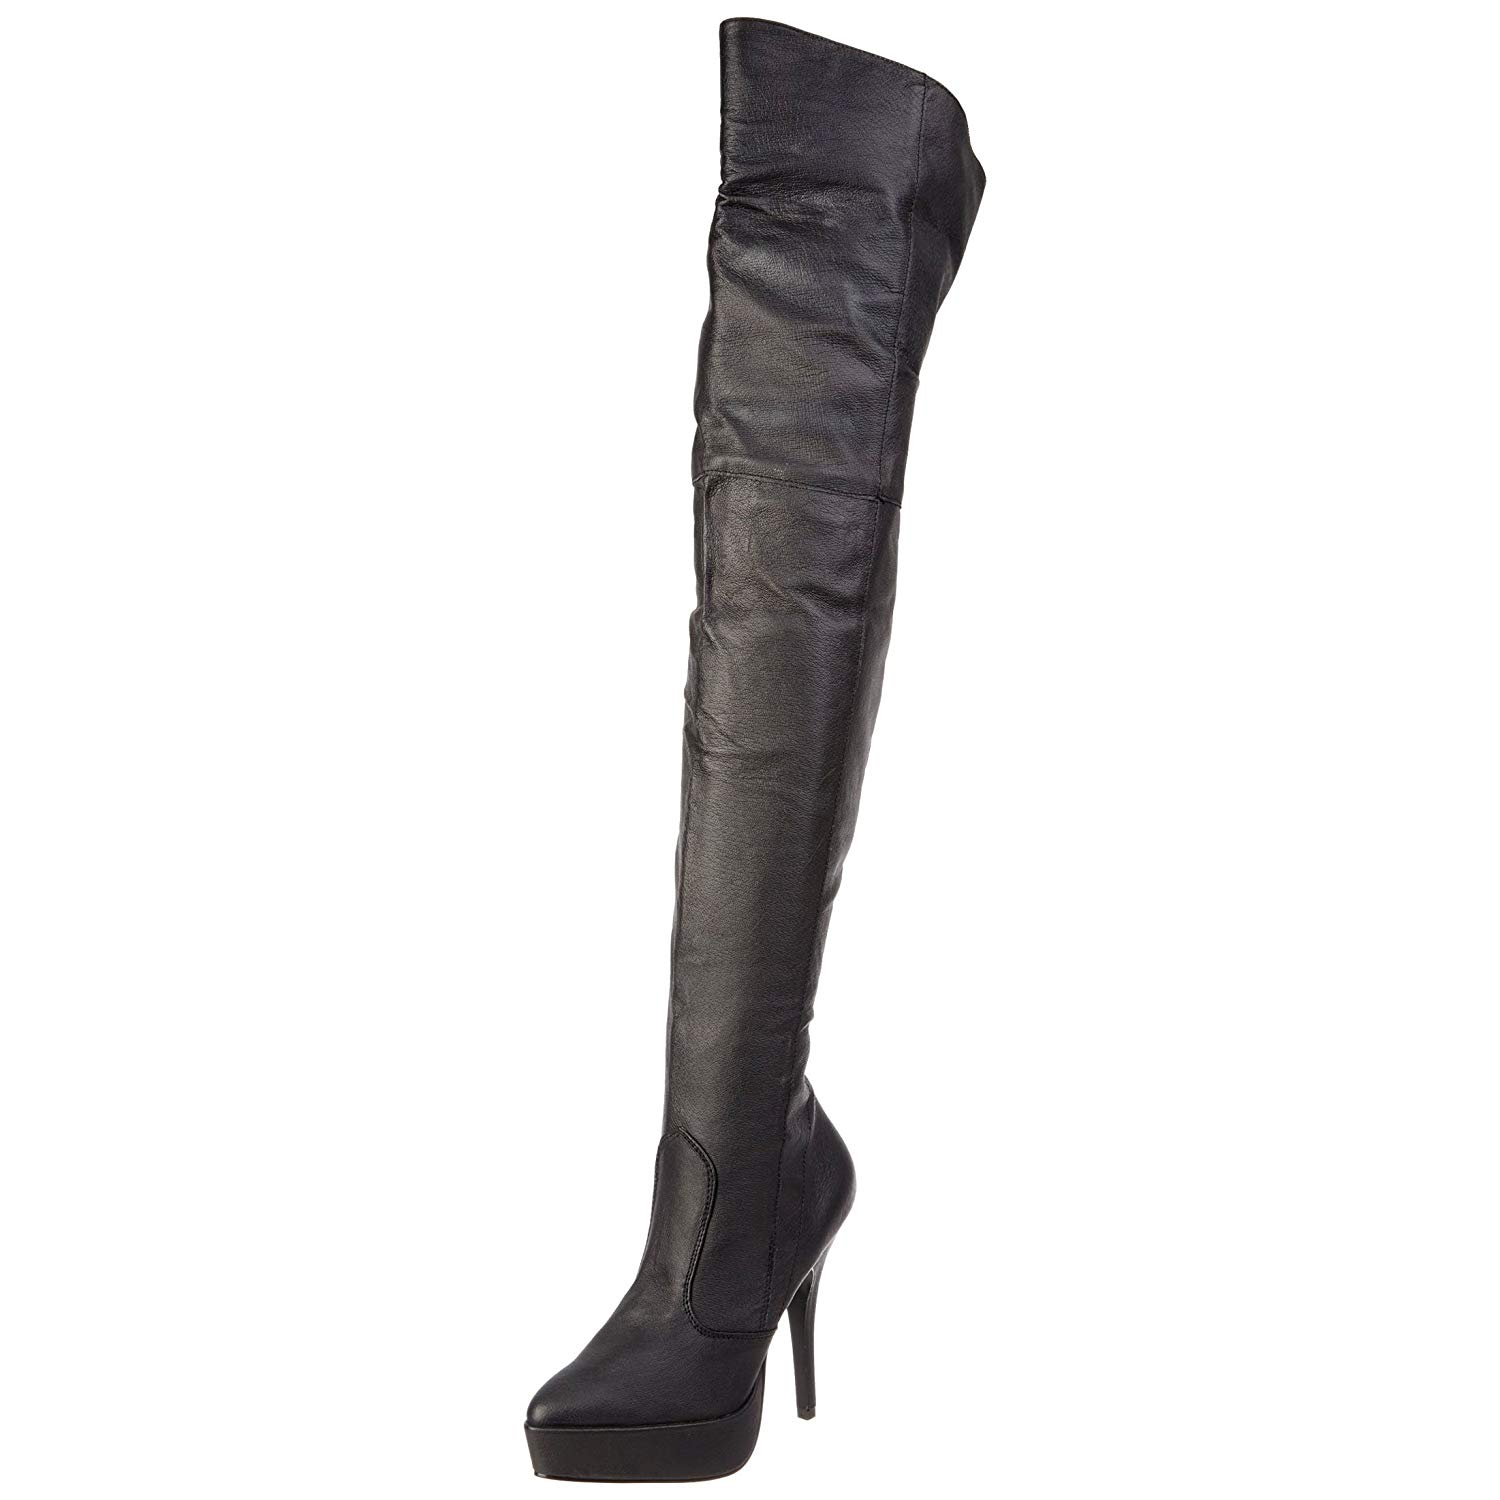 14d3736cbfbf9 Cheap 8 Inch Heels Boots, find 8 Inch Heels Boots deals on line at ...